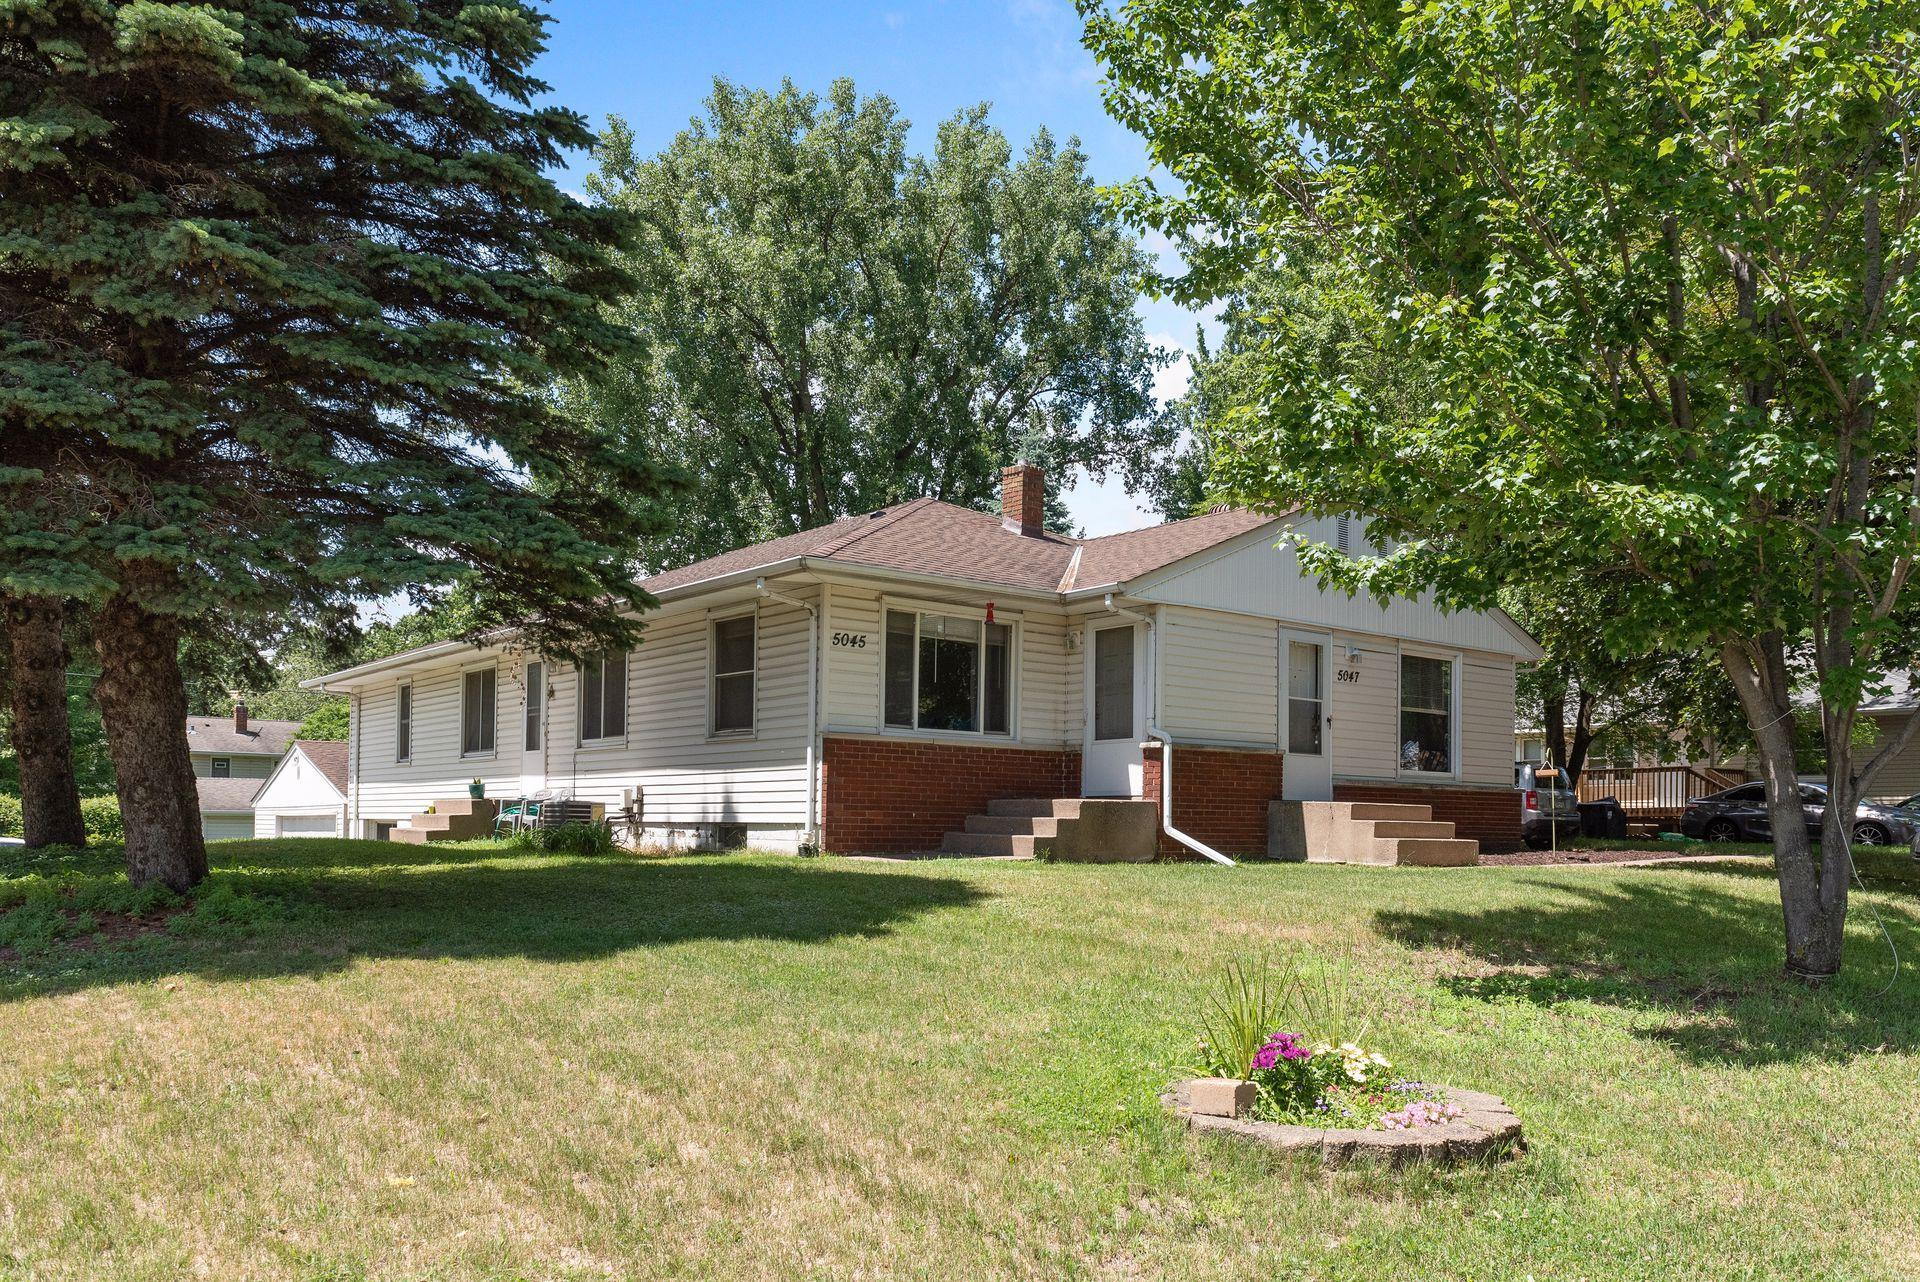 5045/5047 Sunnyside Property Photo - Mounds View, MN real estate listing